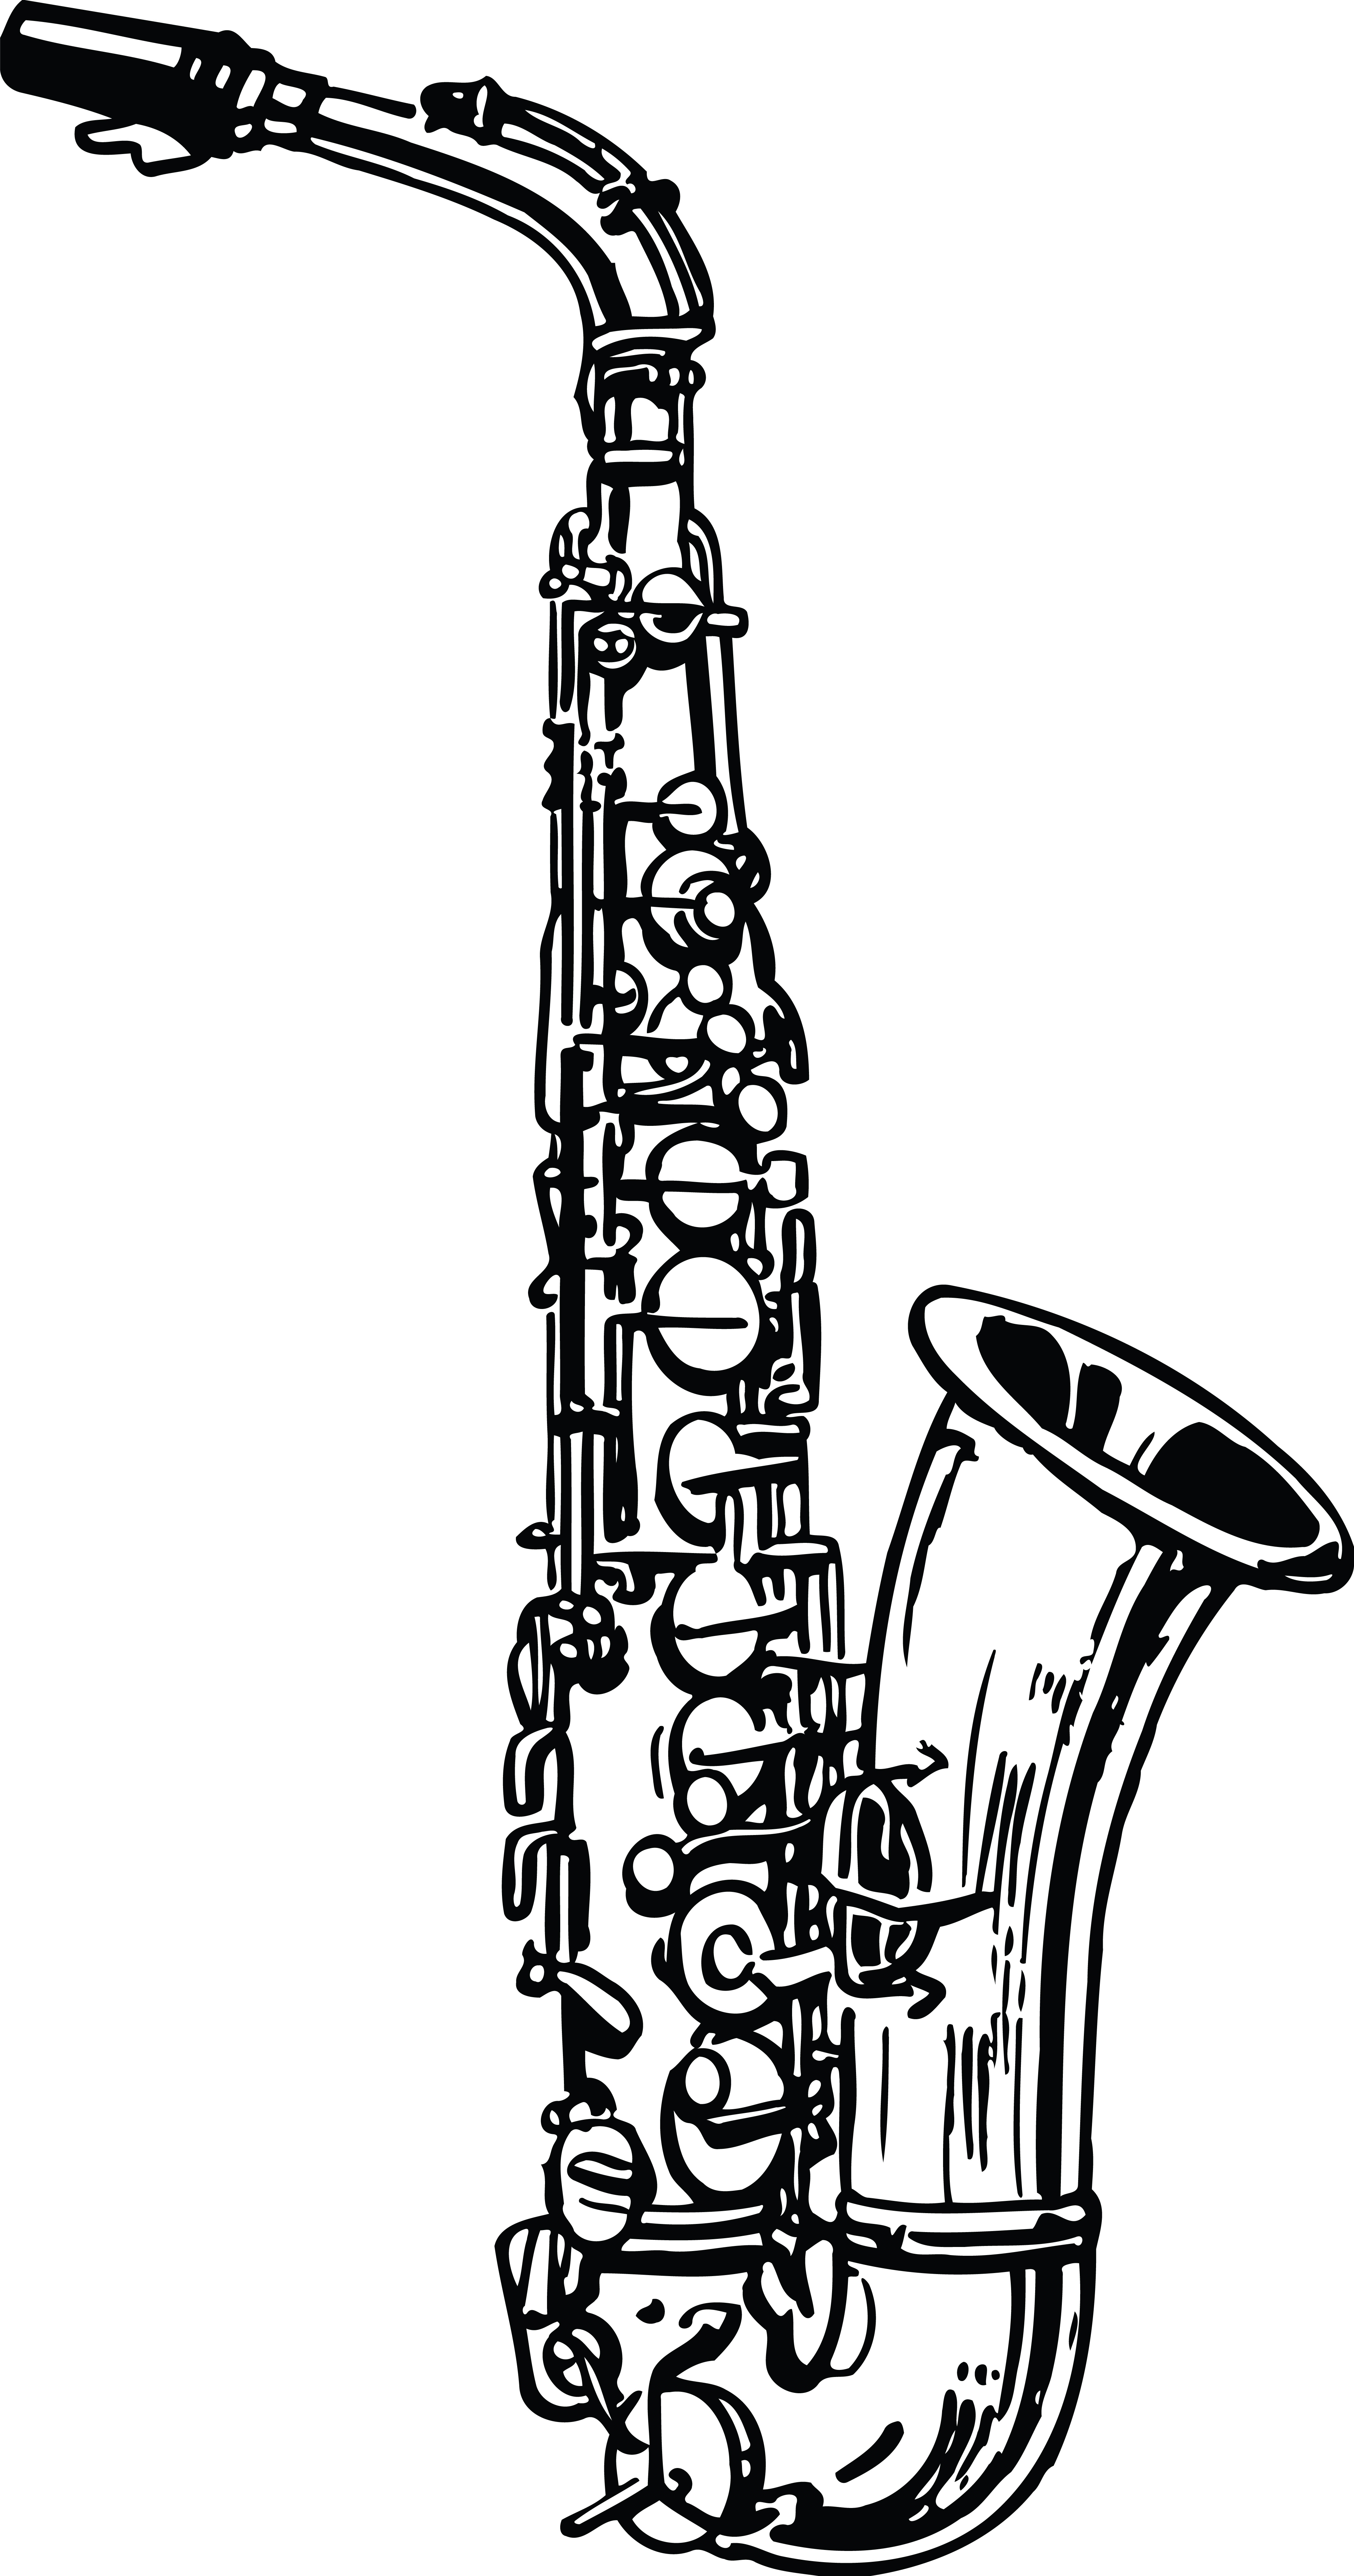 music instruments clipart black and white - photo #25